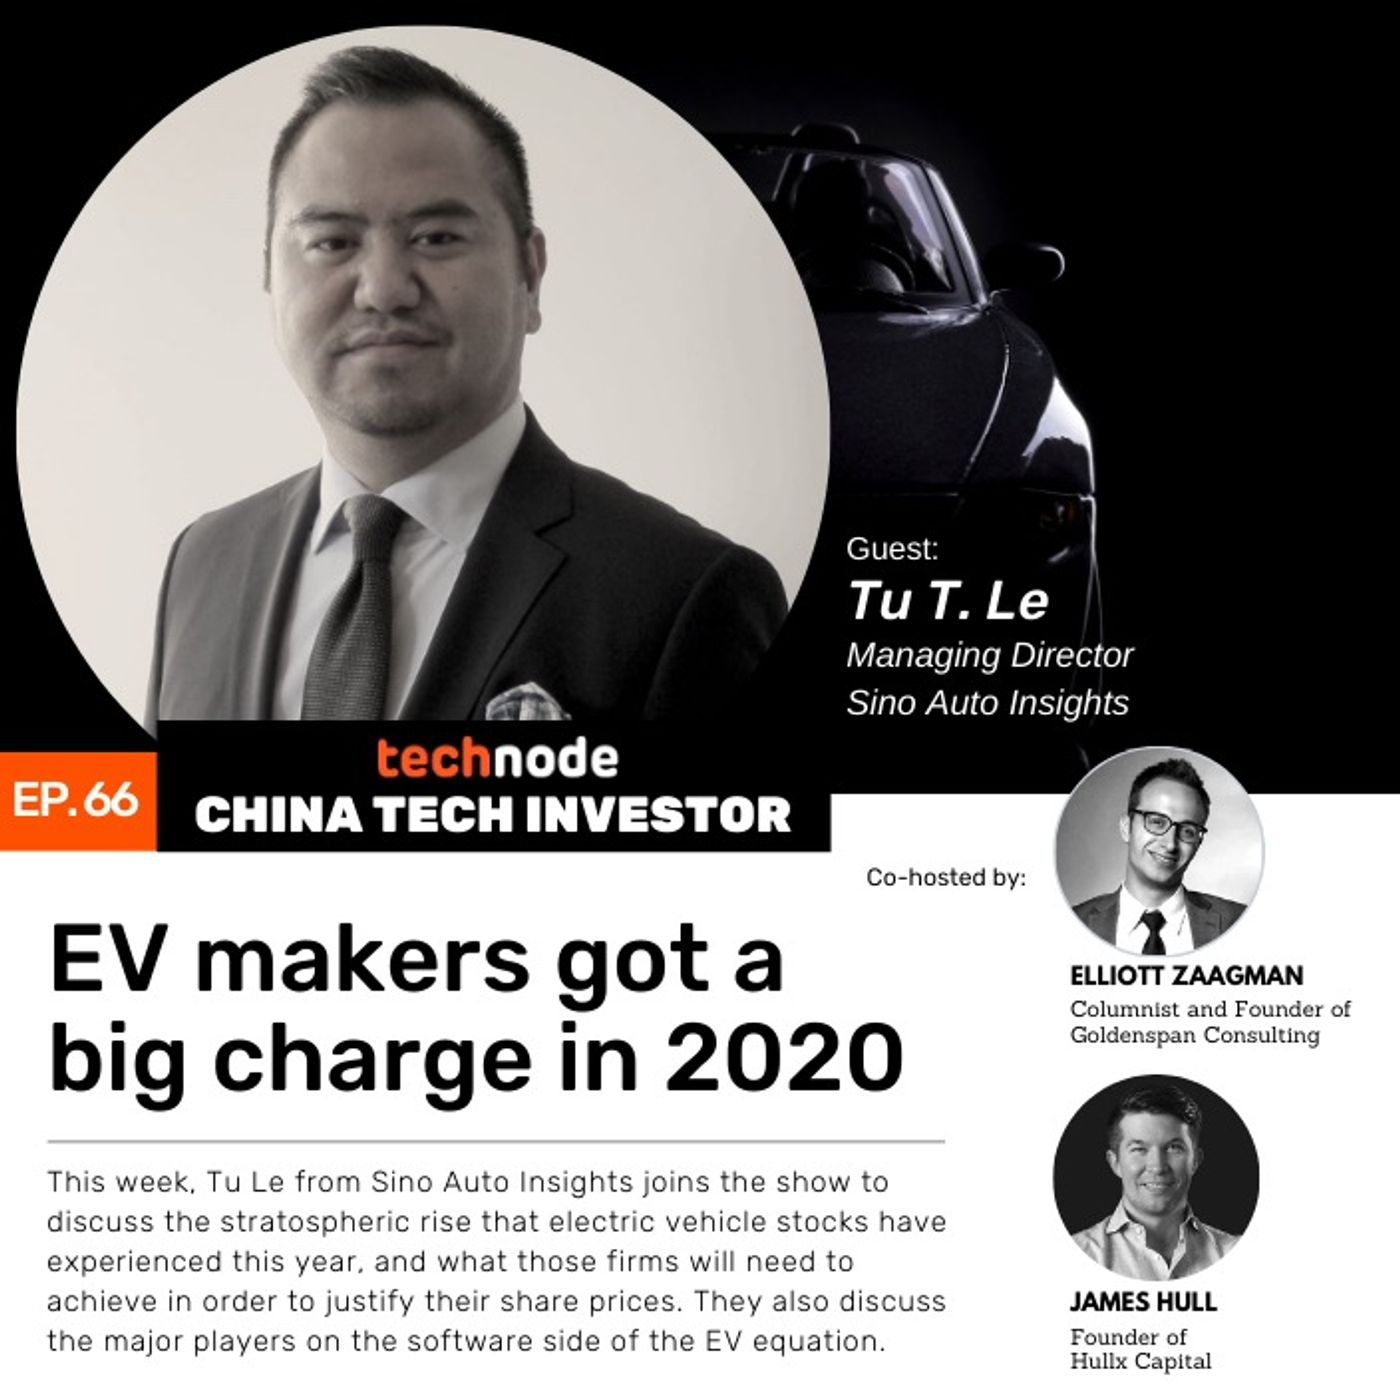 CTI 66: EV makers got a big charge in 2020, with Tu Le